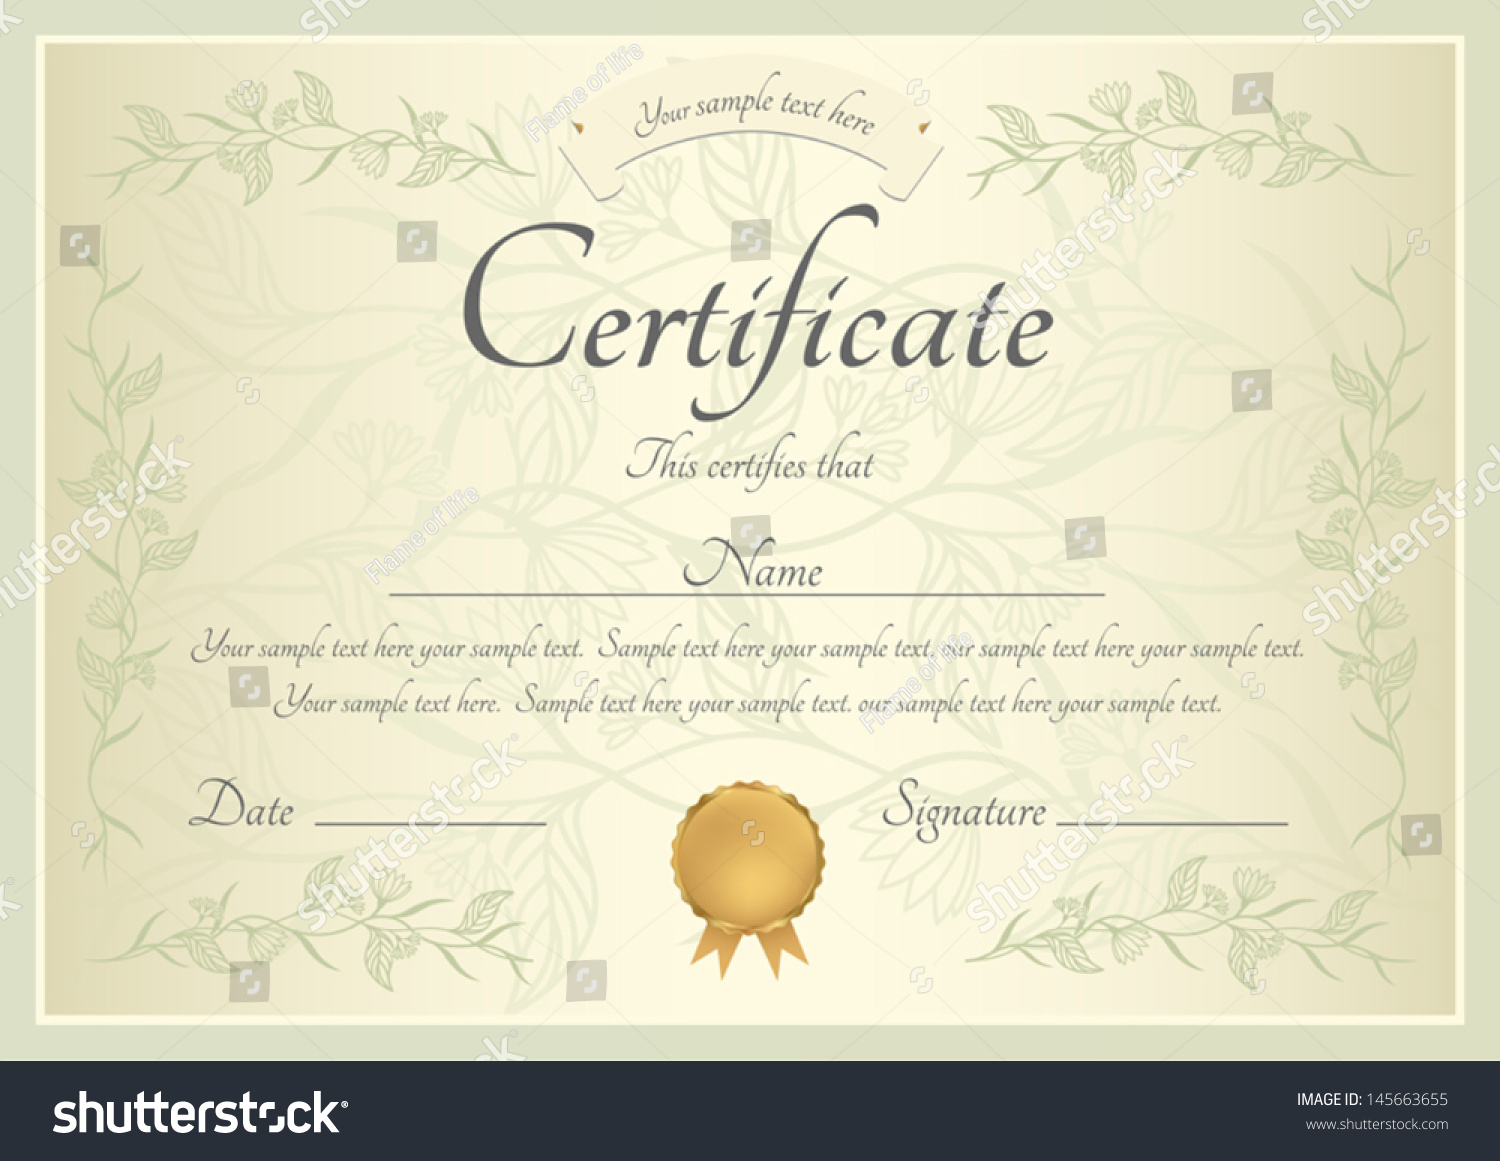 Certificate Completion Template Sample Background Floral – Certificate of Completion Sample